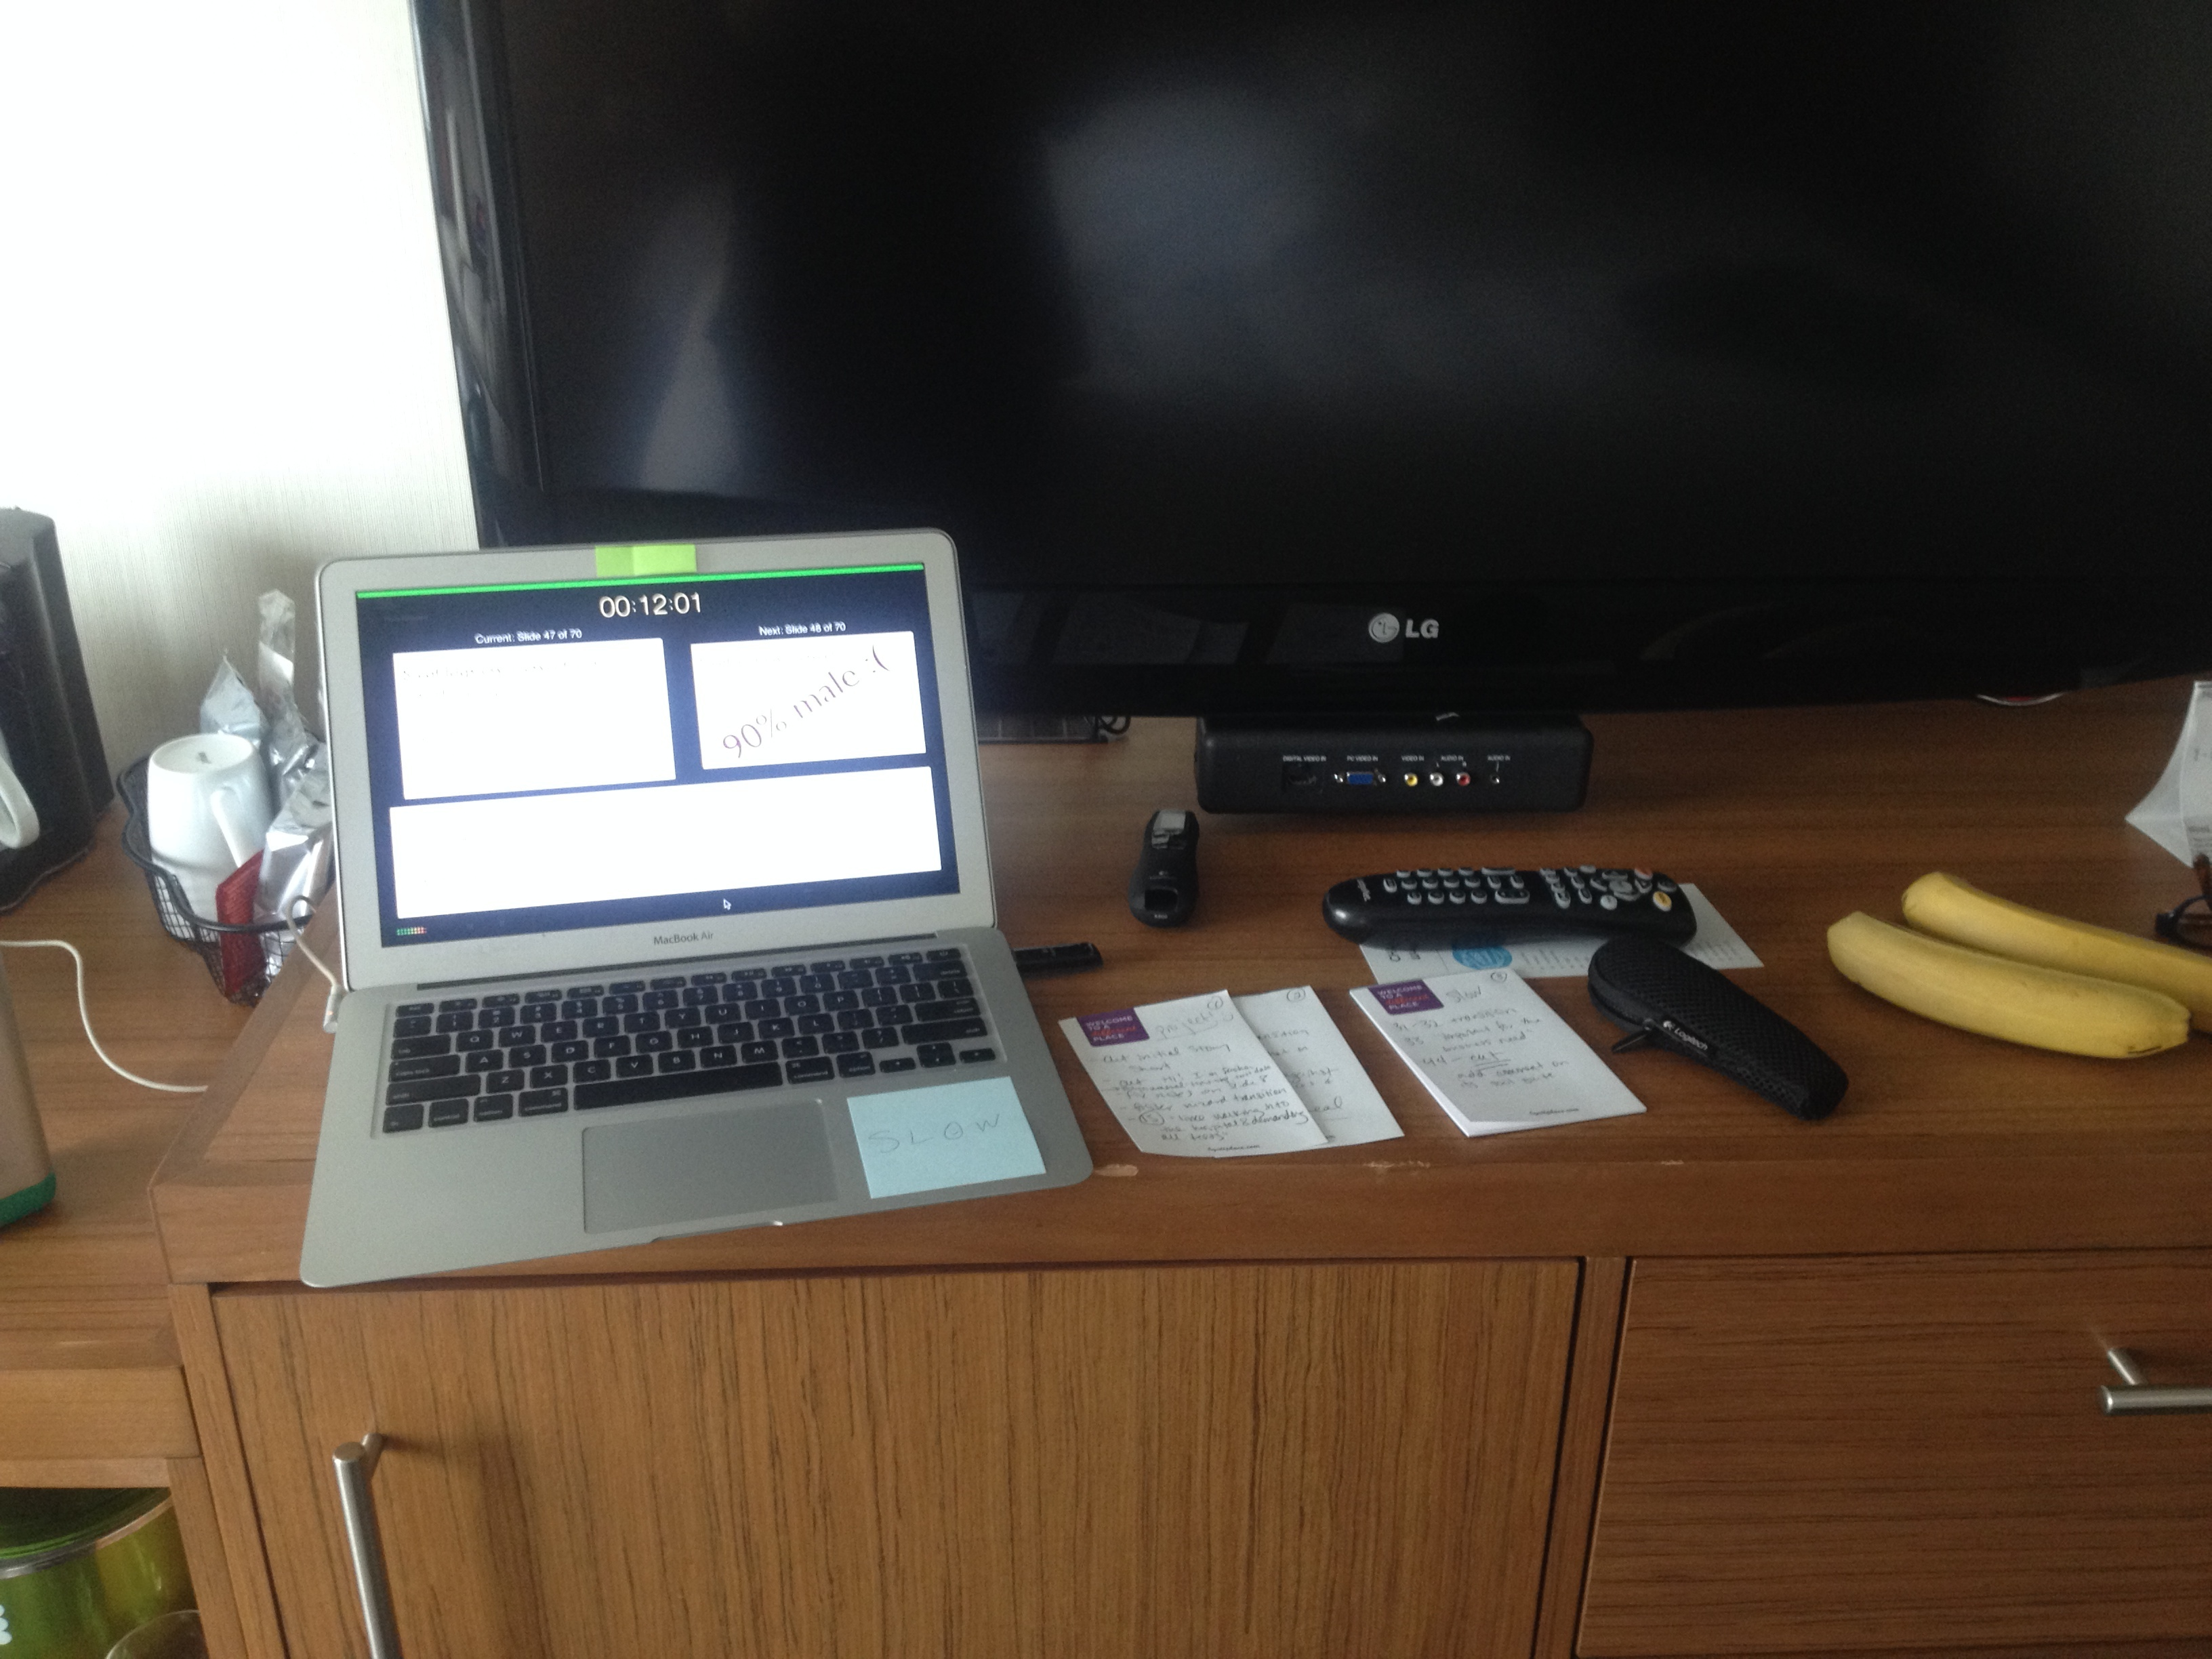 A picture of my laptop and notes on a hotel dresser.